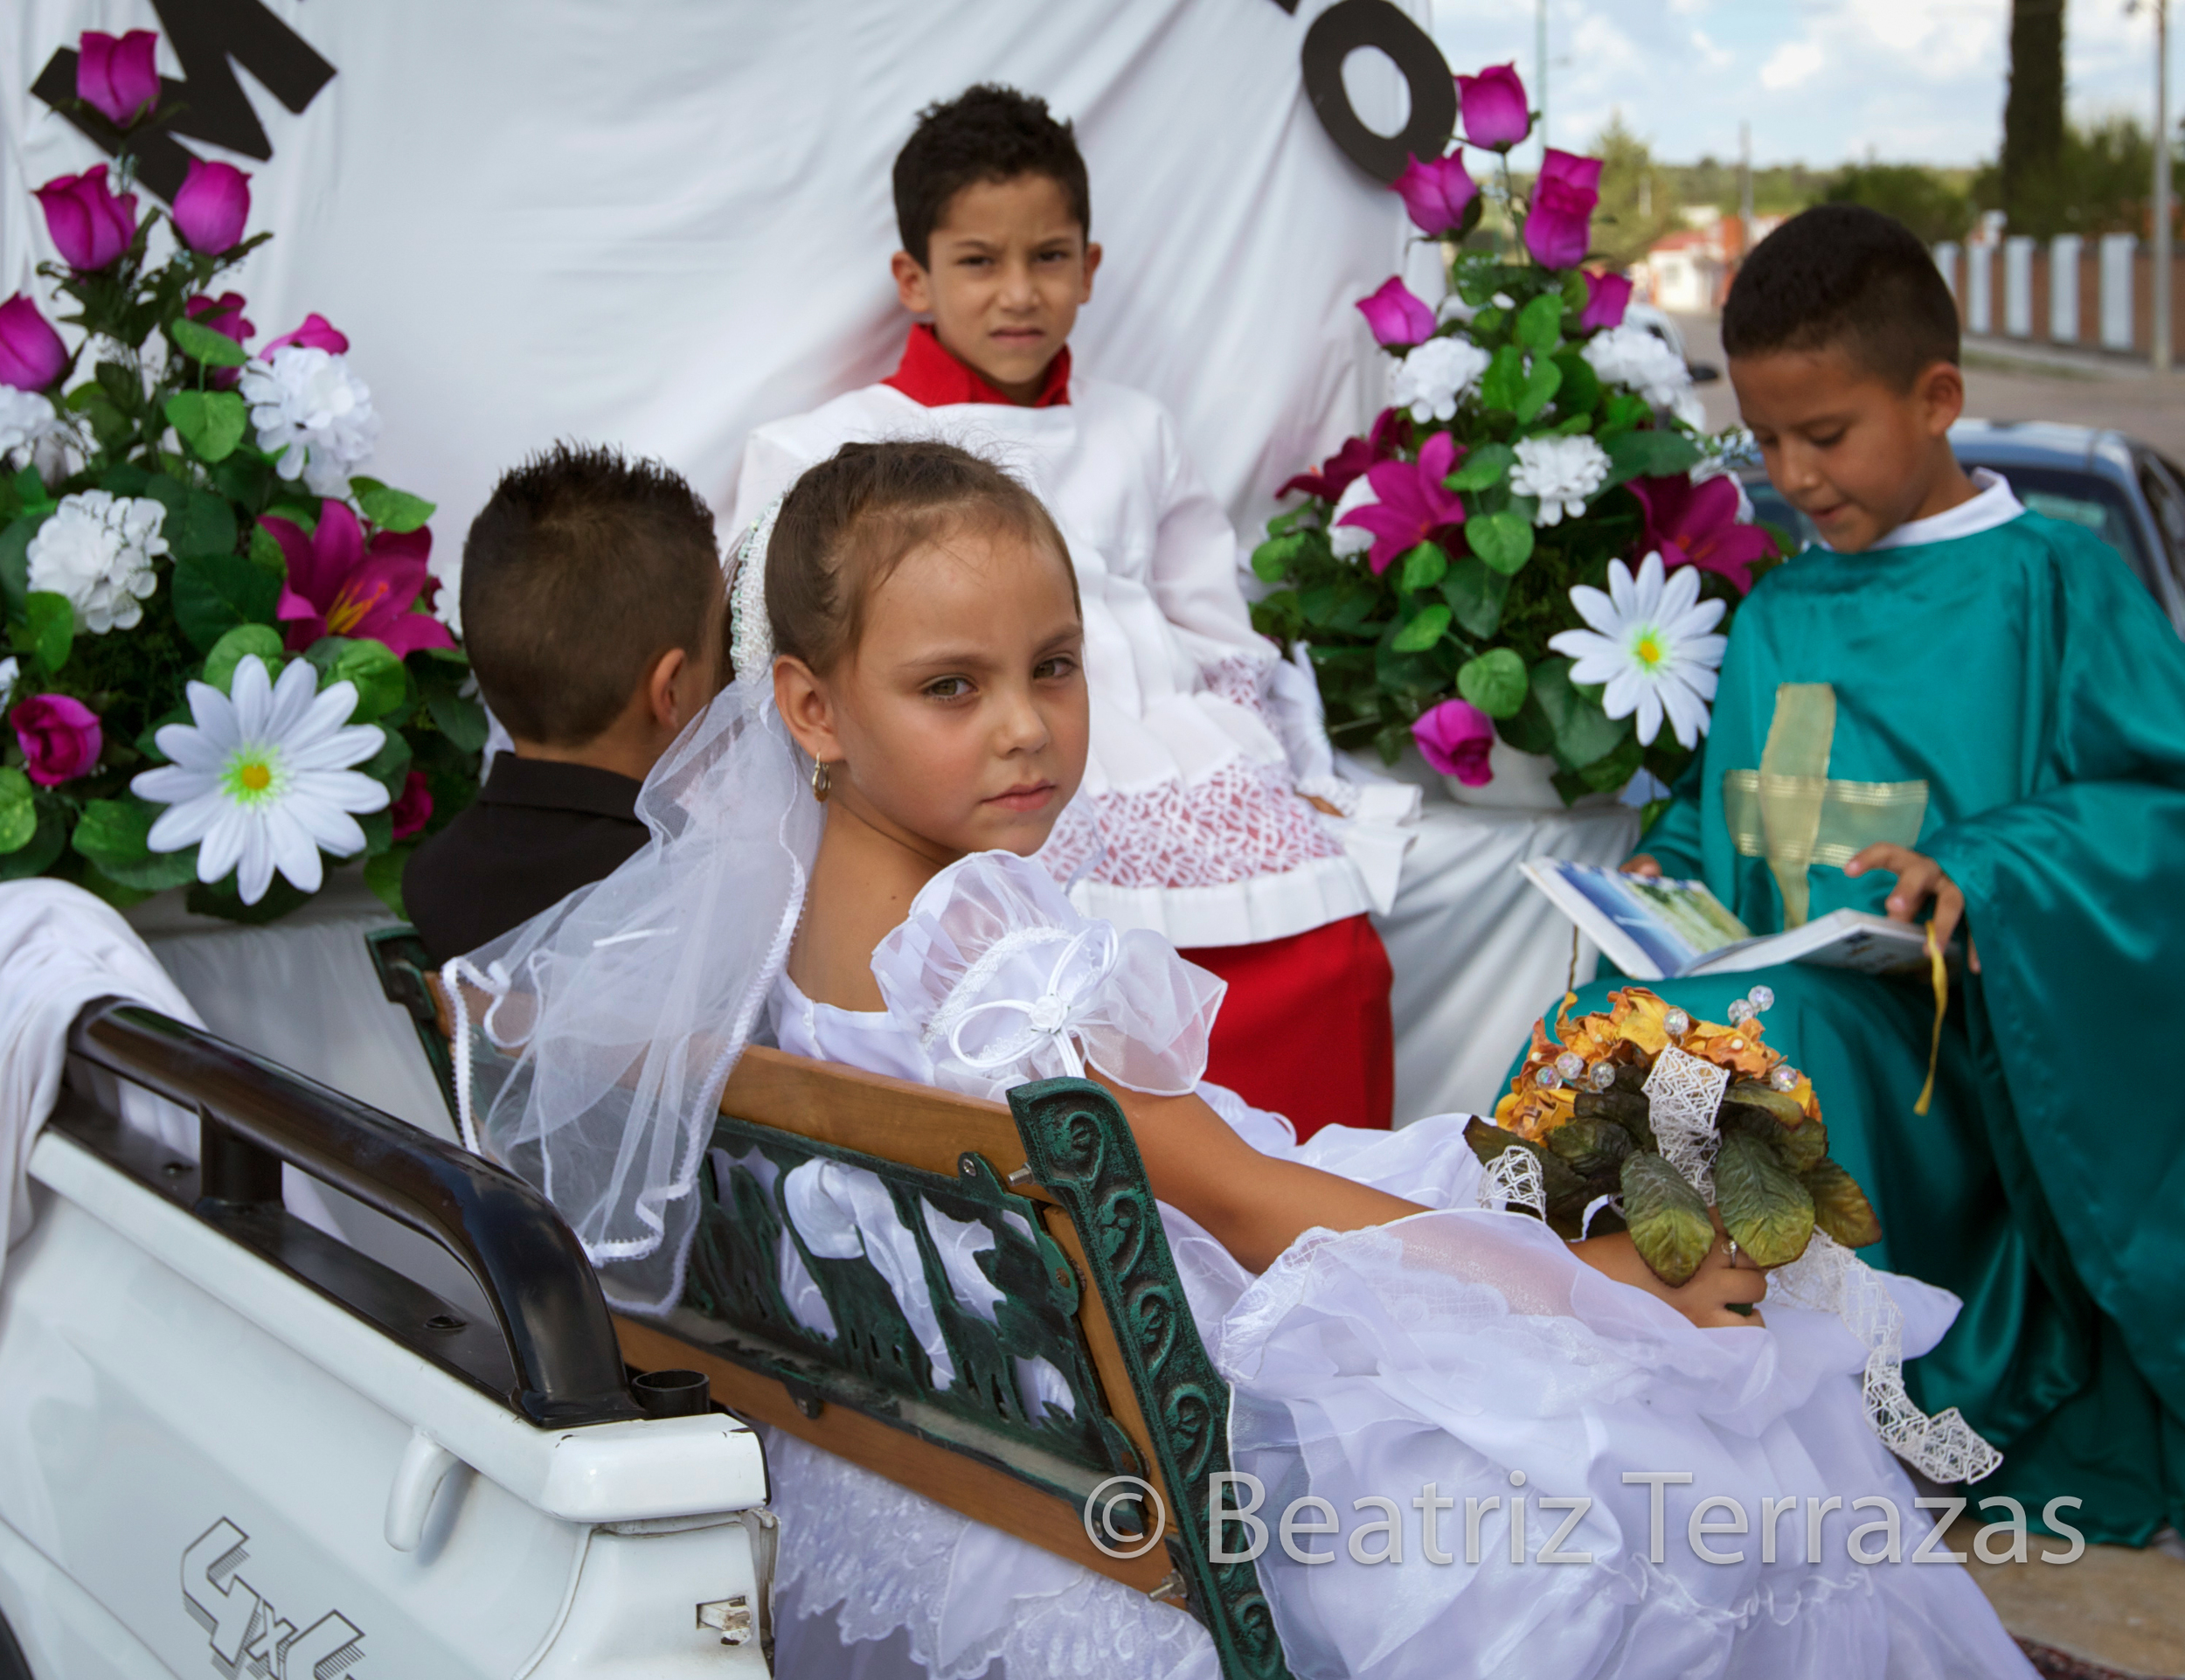 Children take part in a procession during the feast of Nuestra Señora de Las Nieves in Durango, Mexico.